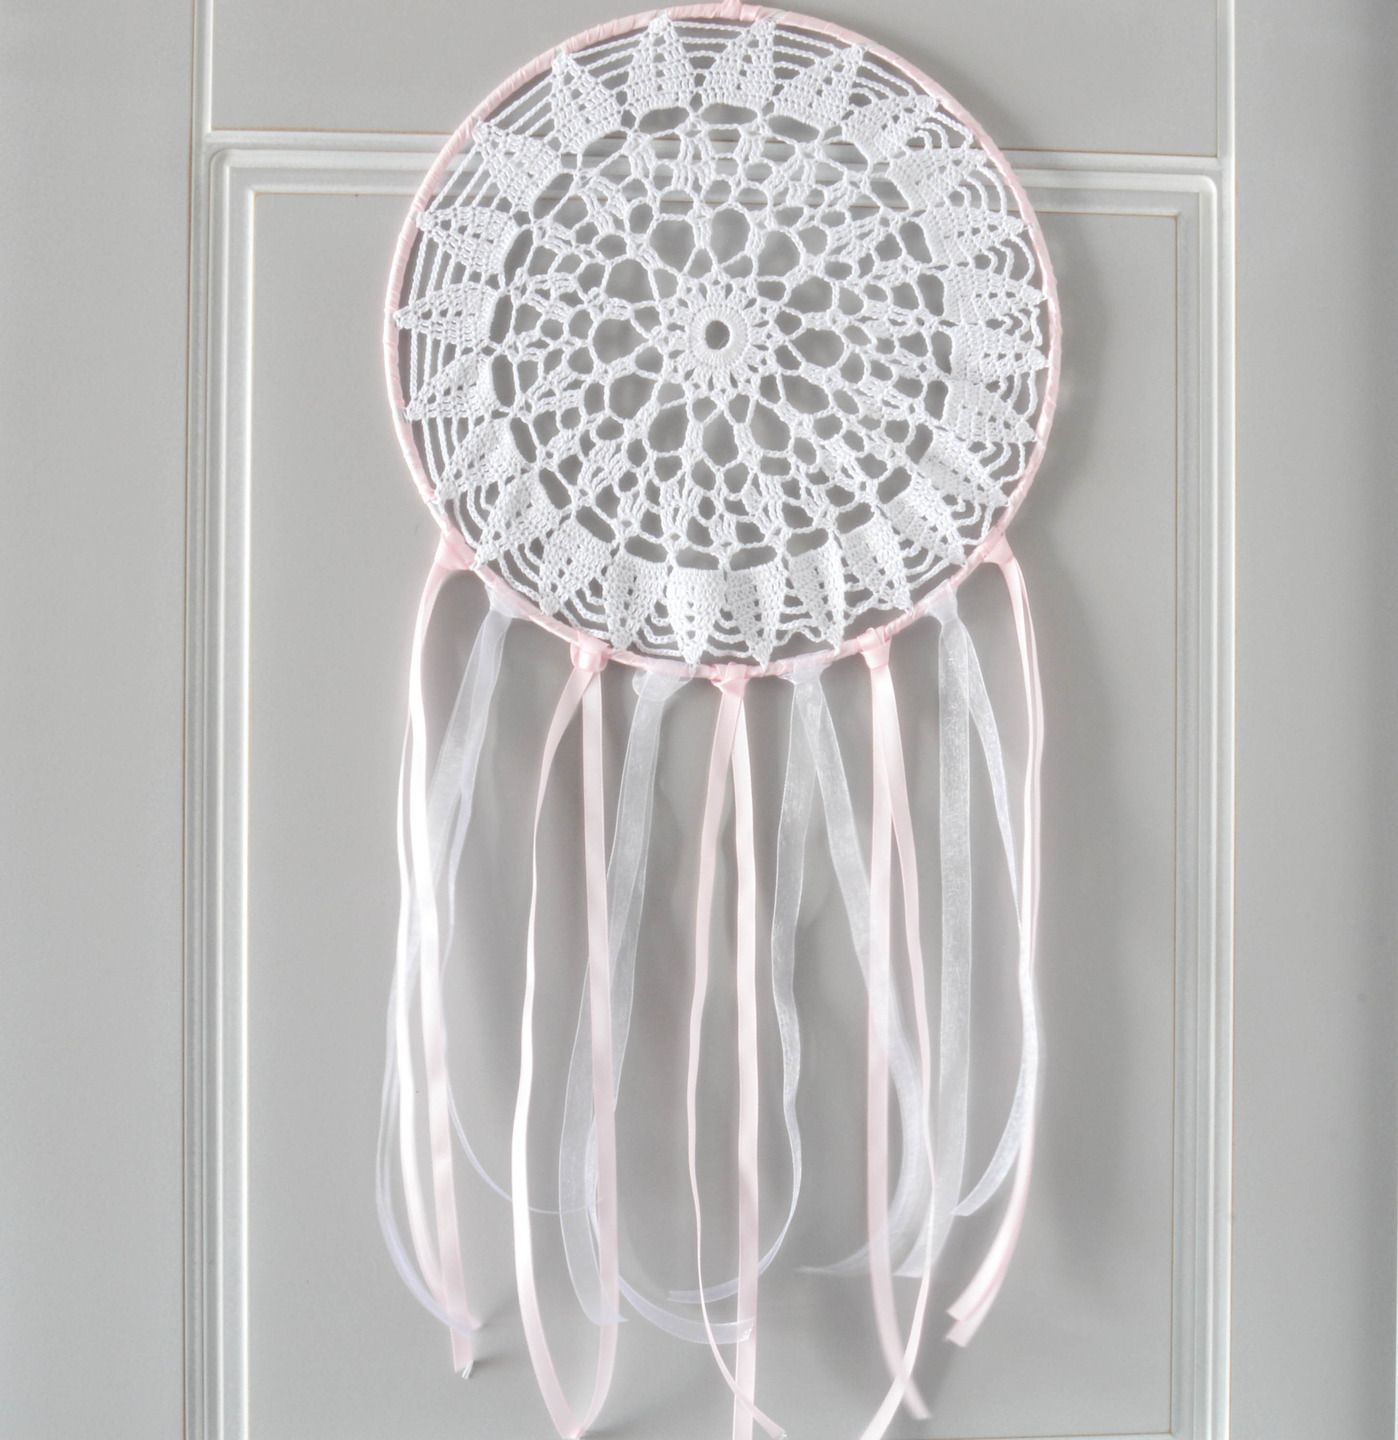 attrape r ves dreamcatcher capteur de r ve 25 cm de diam tre napperon au crochet th me romantique. Black Bedroom Furniture Sets. Home Design Ideas